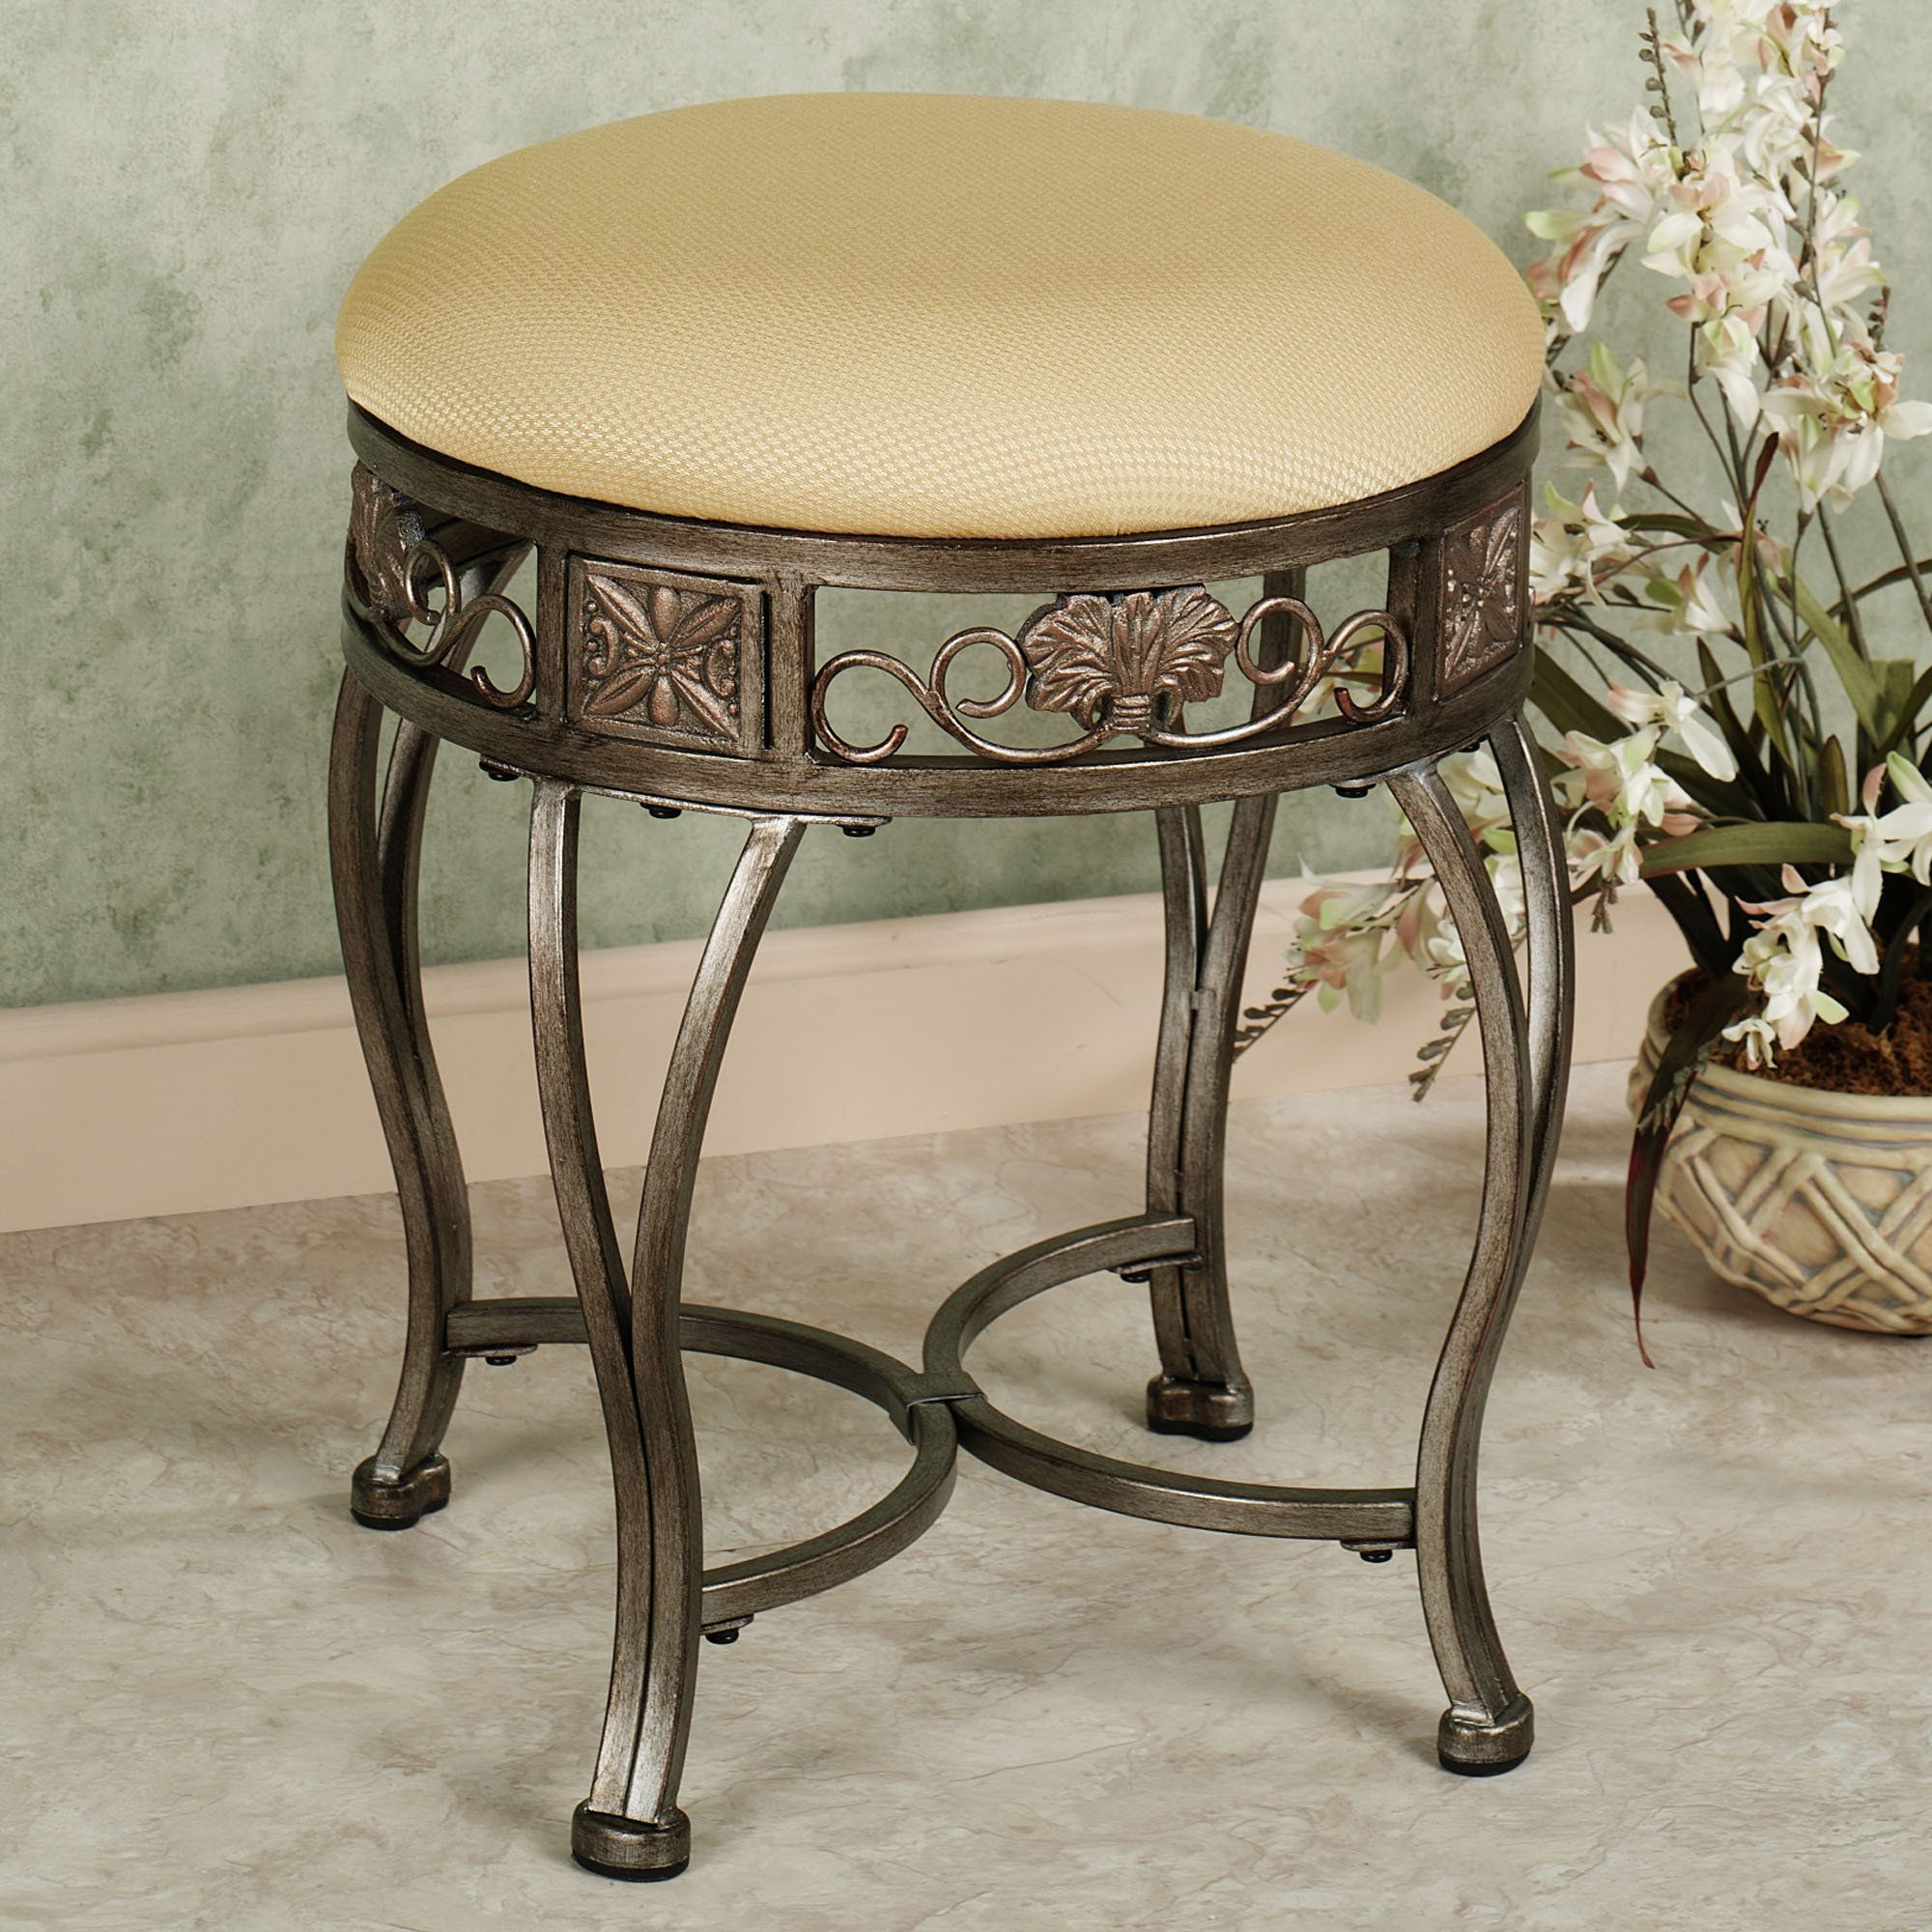 Gold Vanity Chair Hailey Backless Vanity Stool Antique Gold New Home